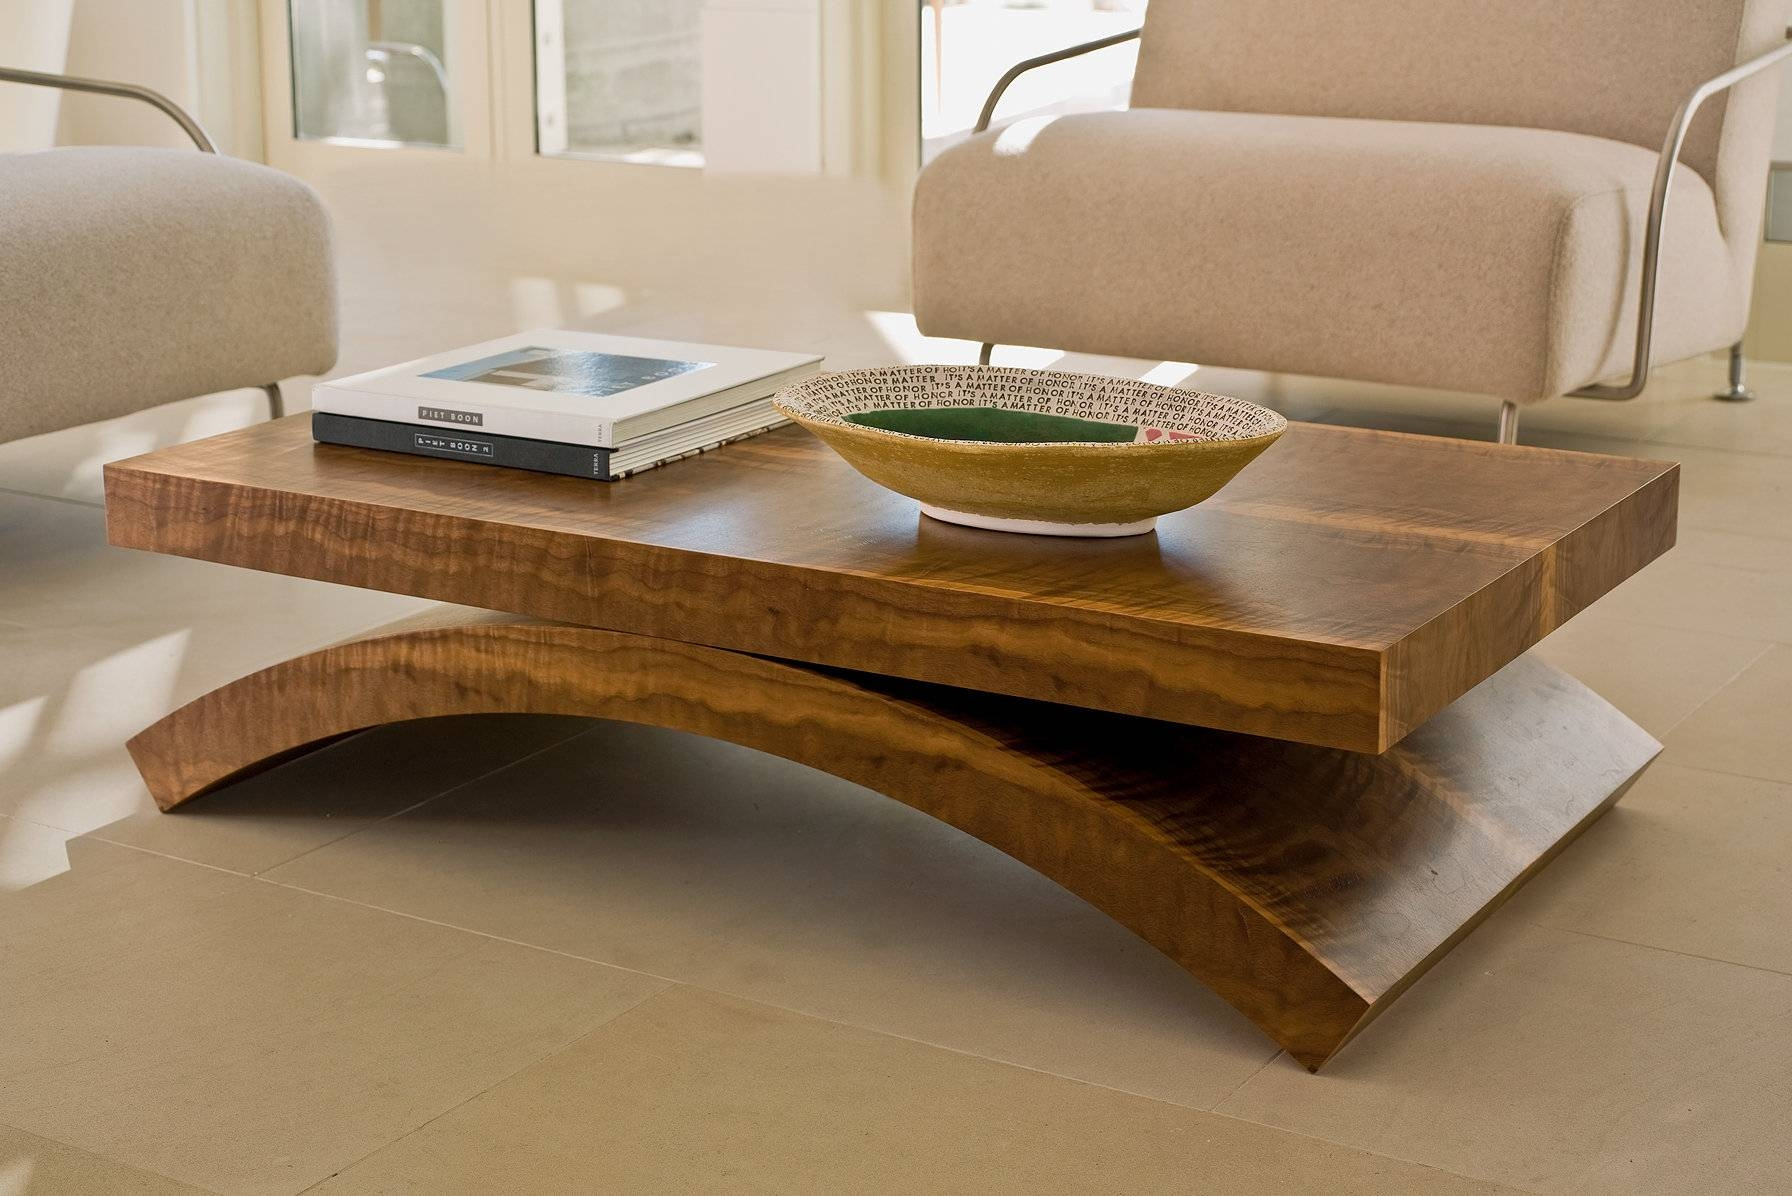 Decor: Stunning Oversized Coffee Table Style With Elegant Design throughout Round Coffee Tables With Drawer (Image 9 of 30)